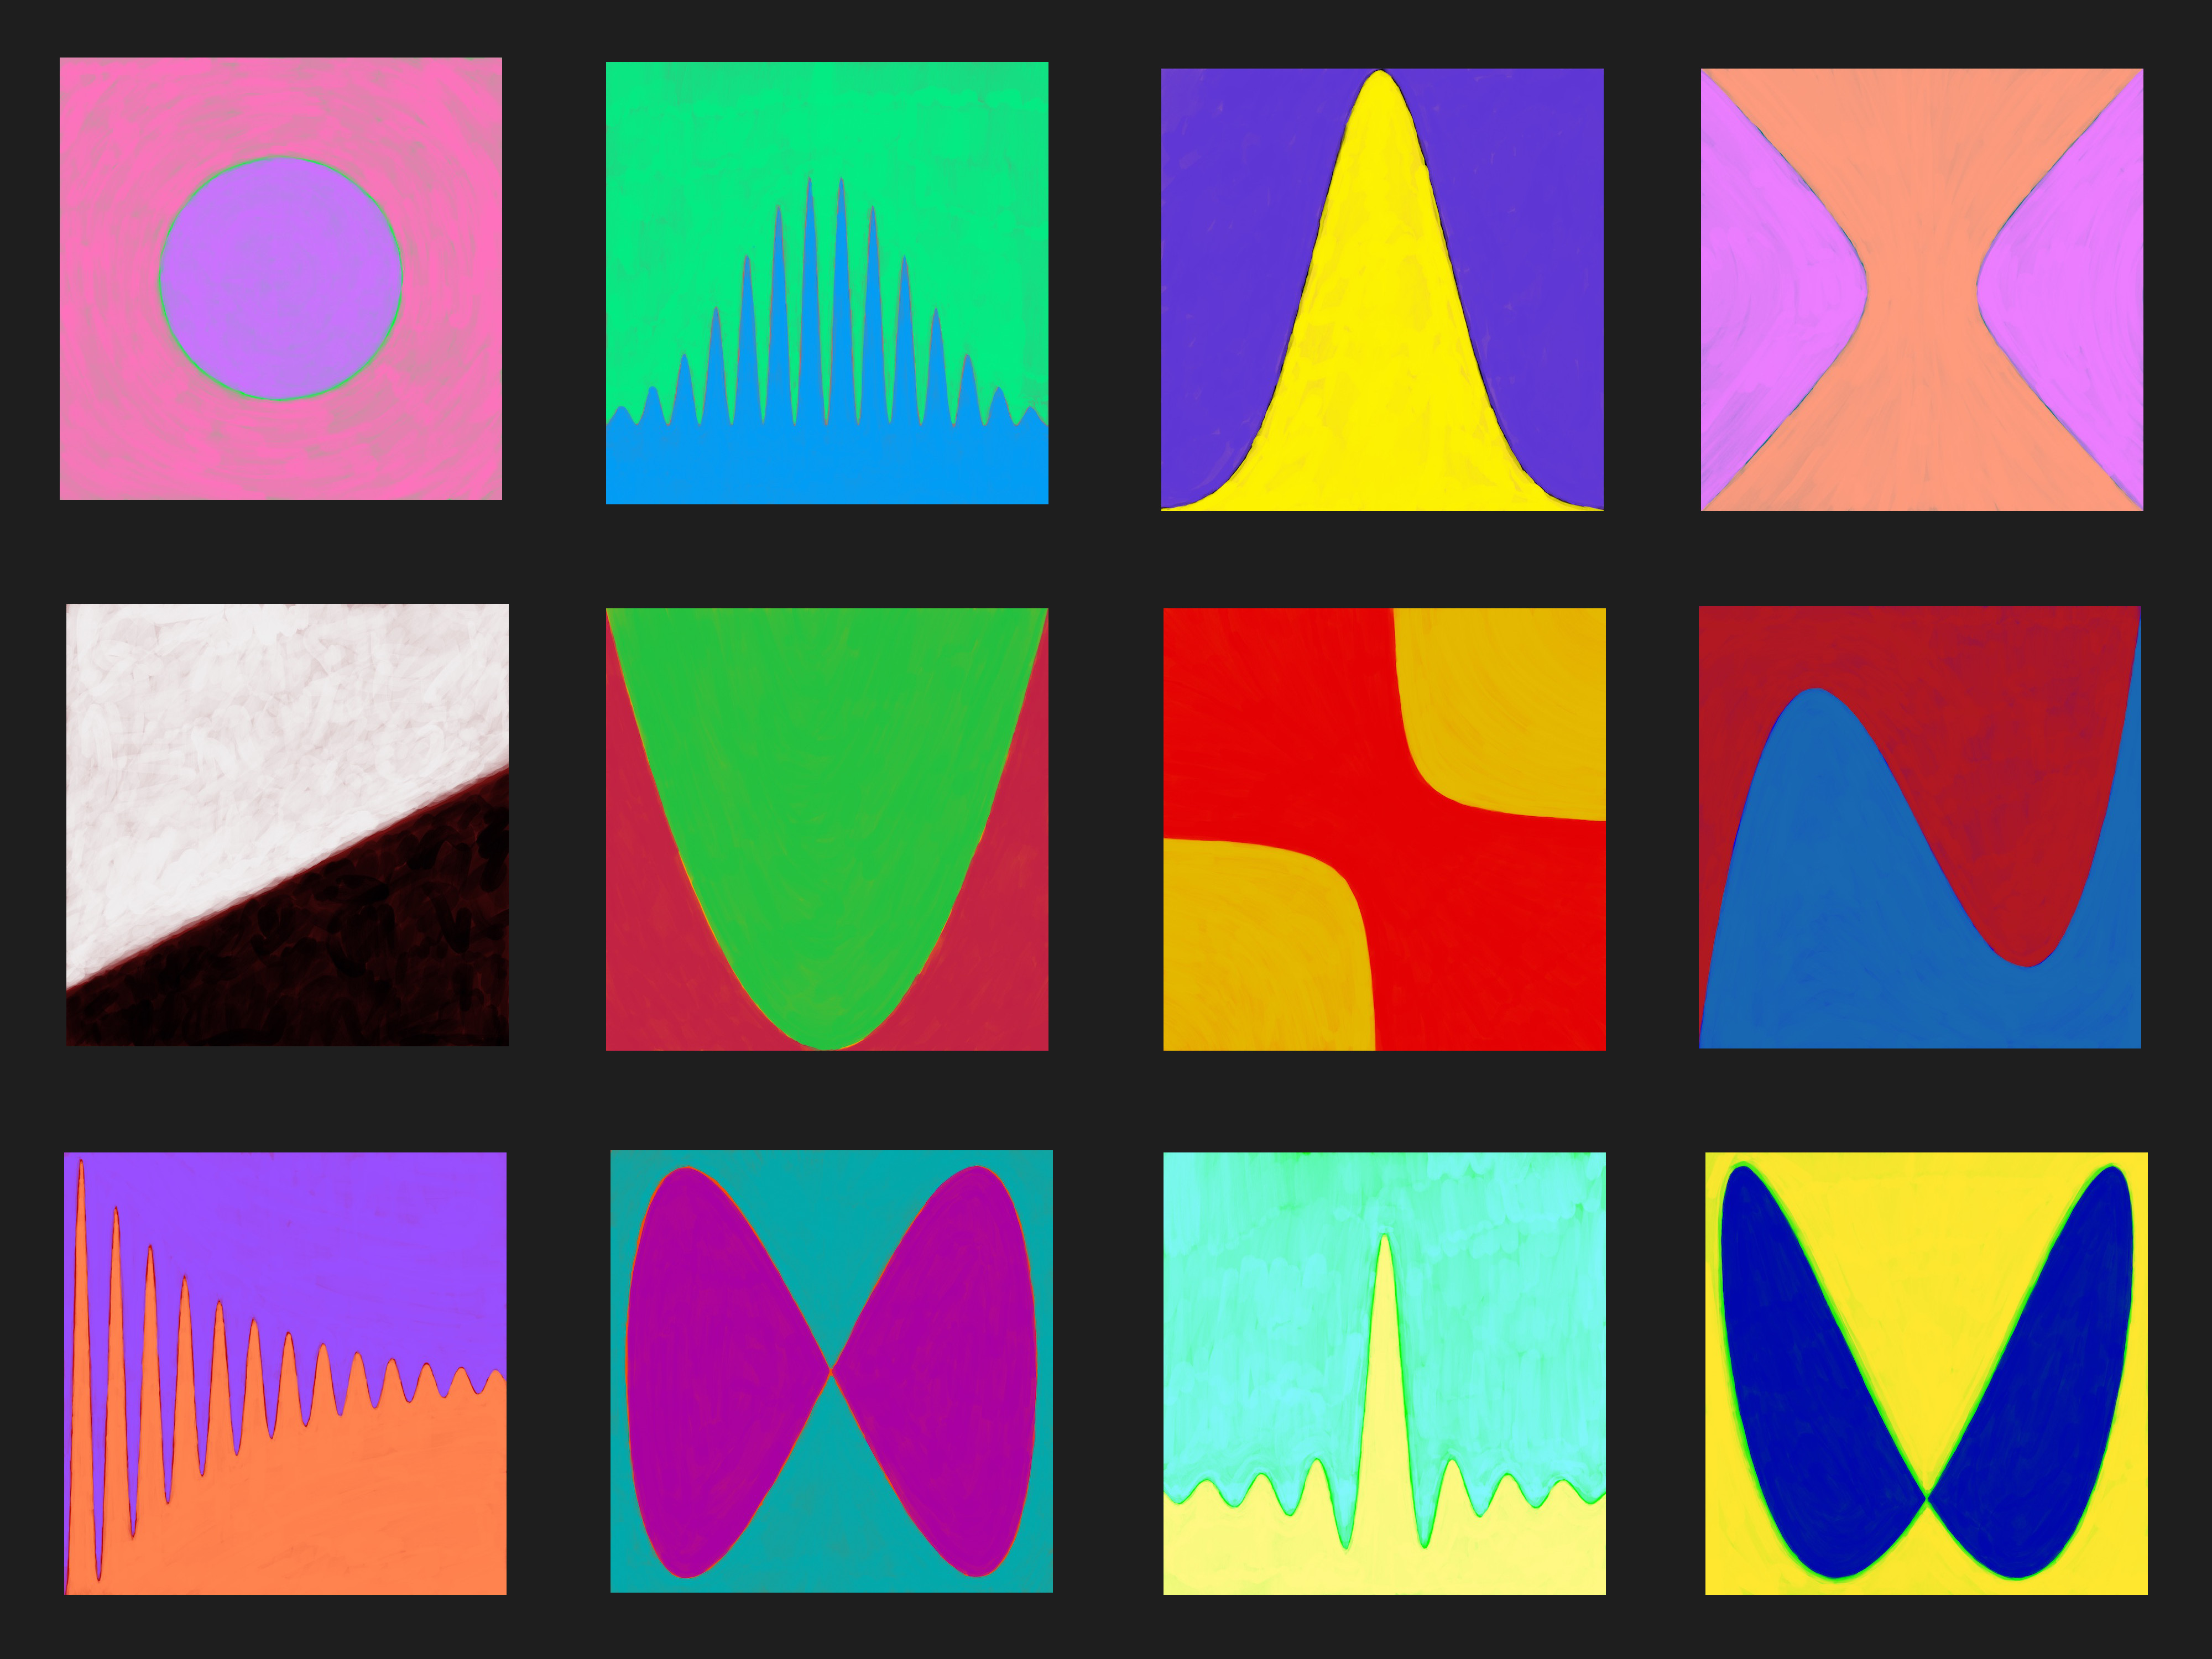 math-art-composition-12-painting